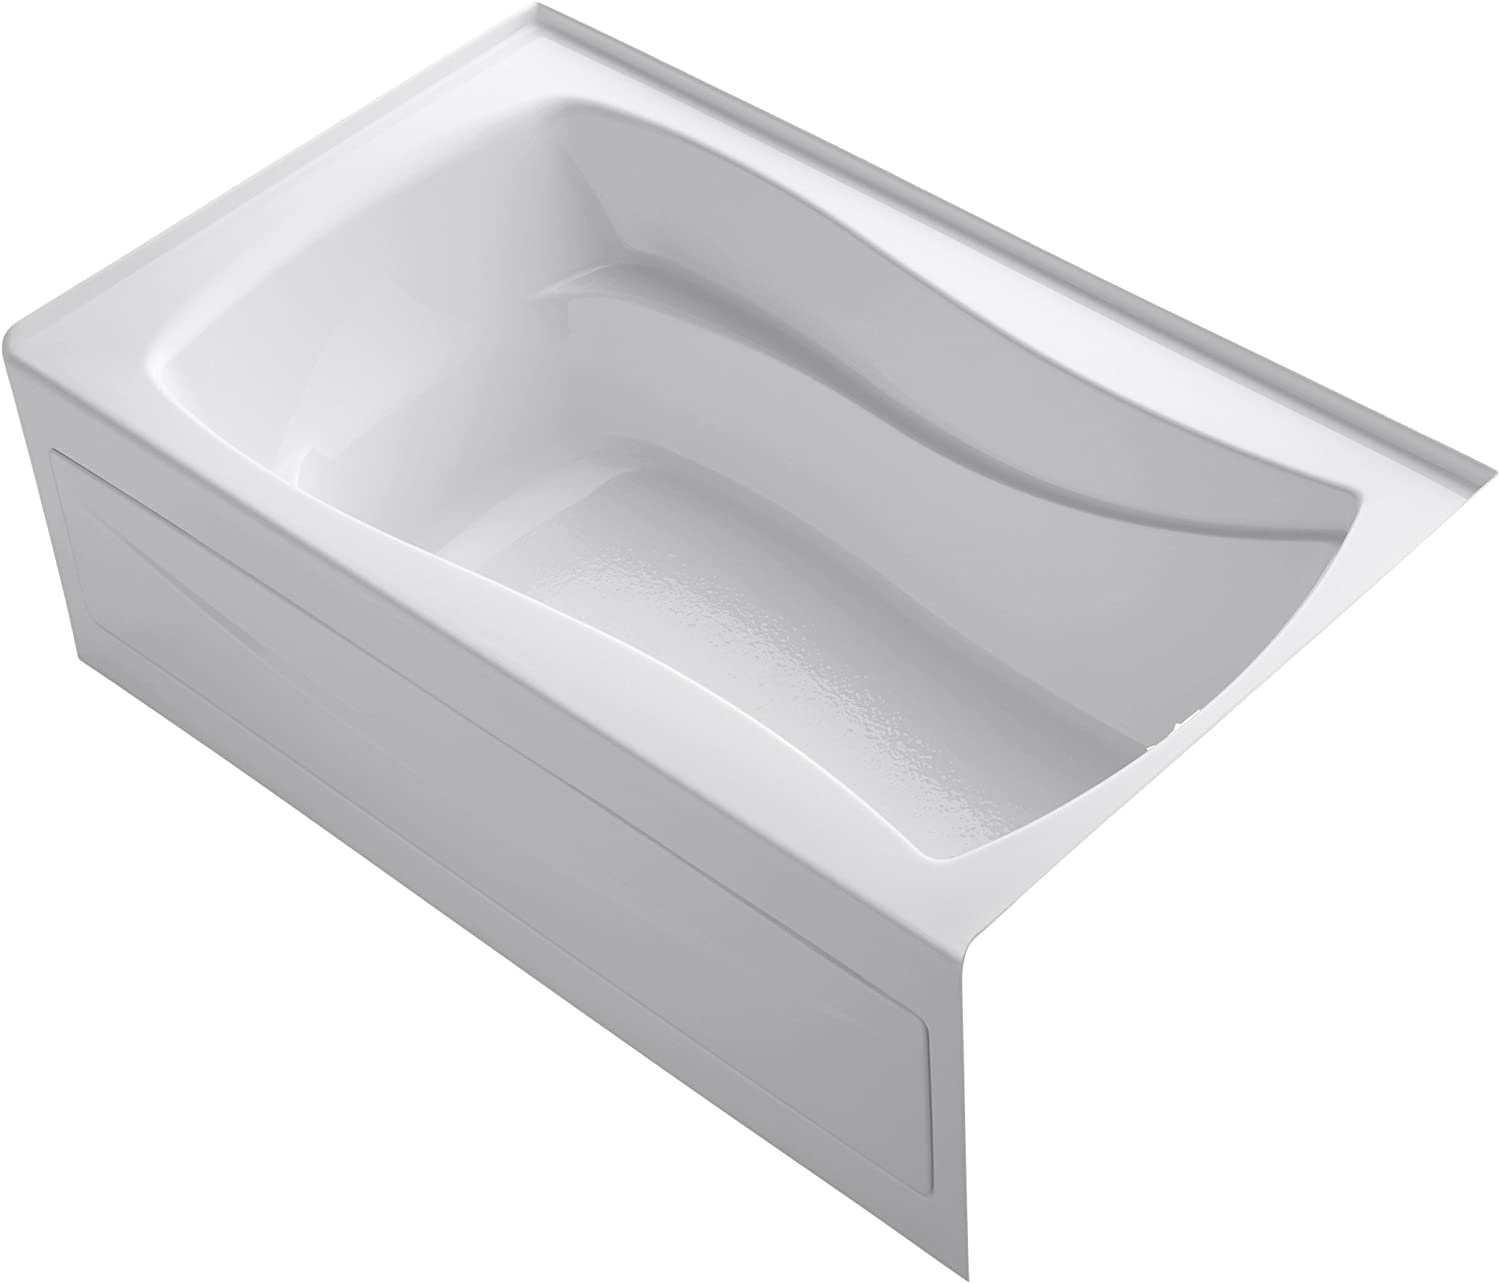 Almond Kohler K-1242-RA-47 Mariposa 5Ft Bath with Integral Apron Tile Flange and Right-Hand Drain